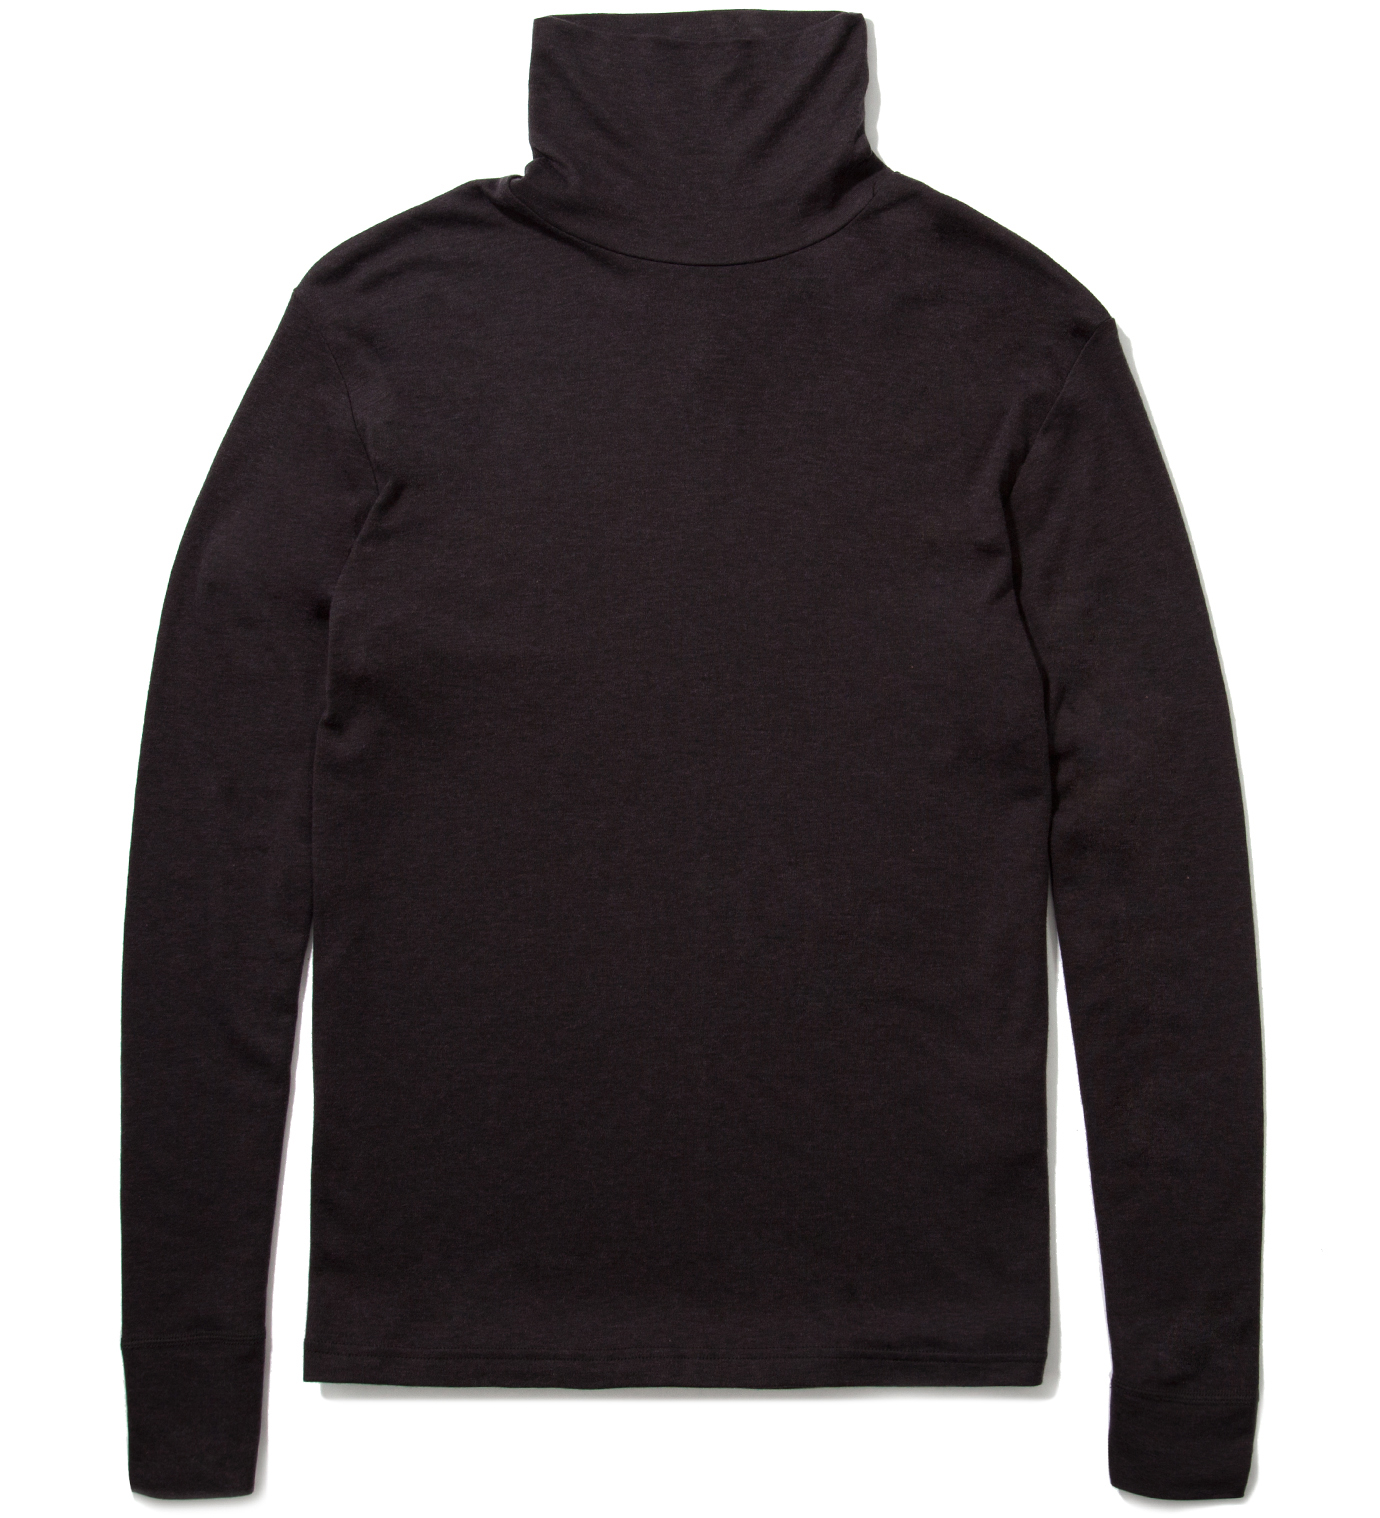 A. Sauvage Brown Long Sleeved Roll Neck Base Layer